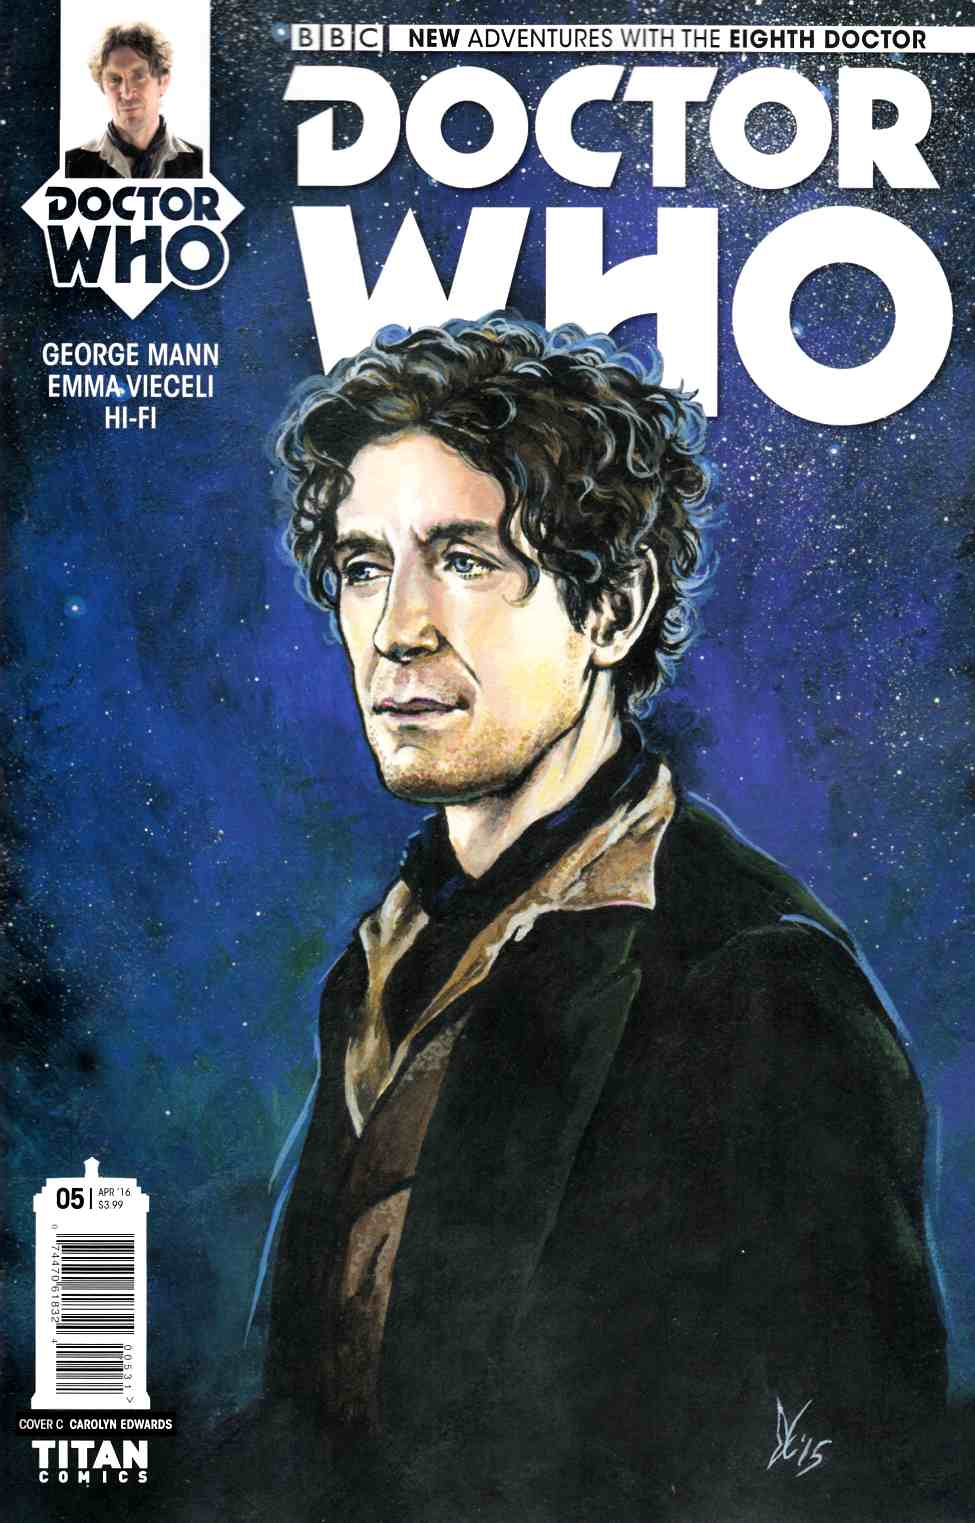 Doctor Who 8th Doctor #5 Cover C- Edwards [Titan Comic] THUMBNAIL